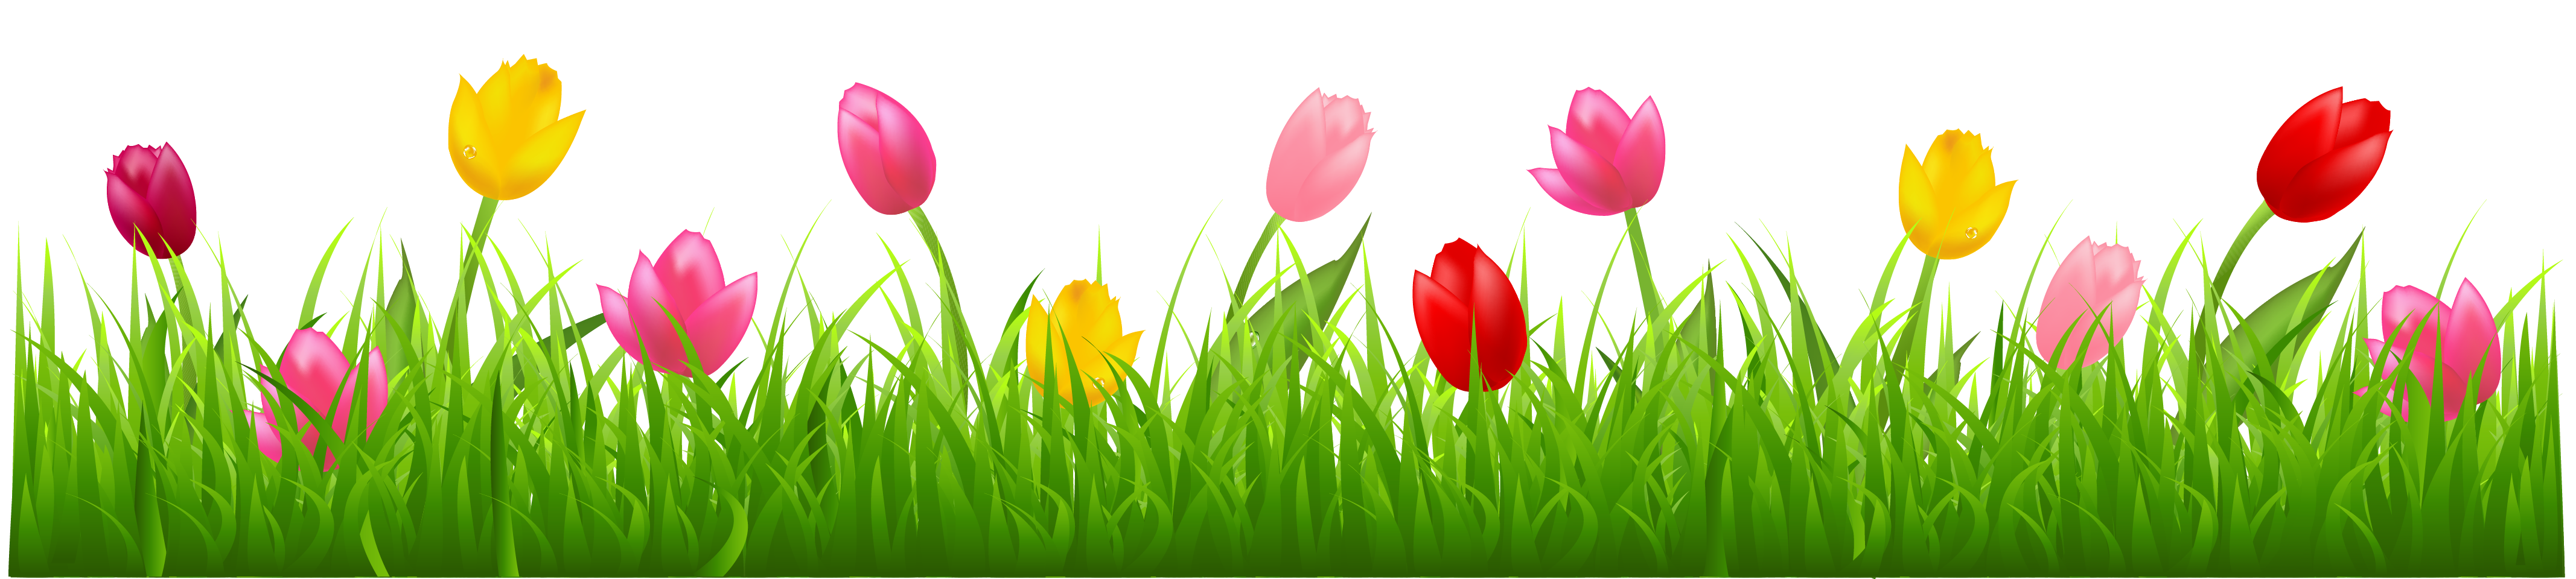 Tulips free clipart clip black and white Free Spring Tulips Cliparts, Download Free Clip Art, Free ... clip black and white